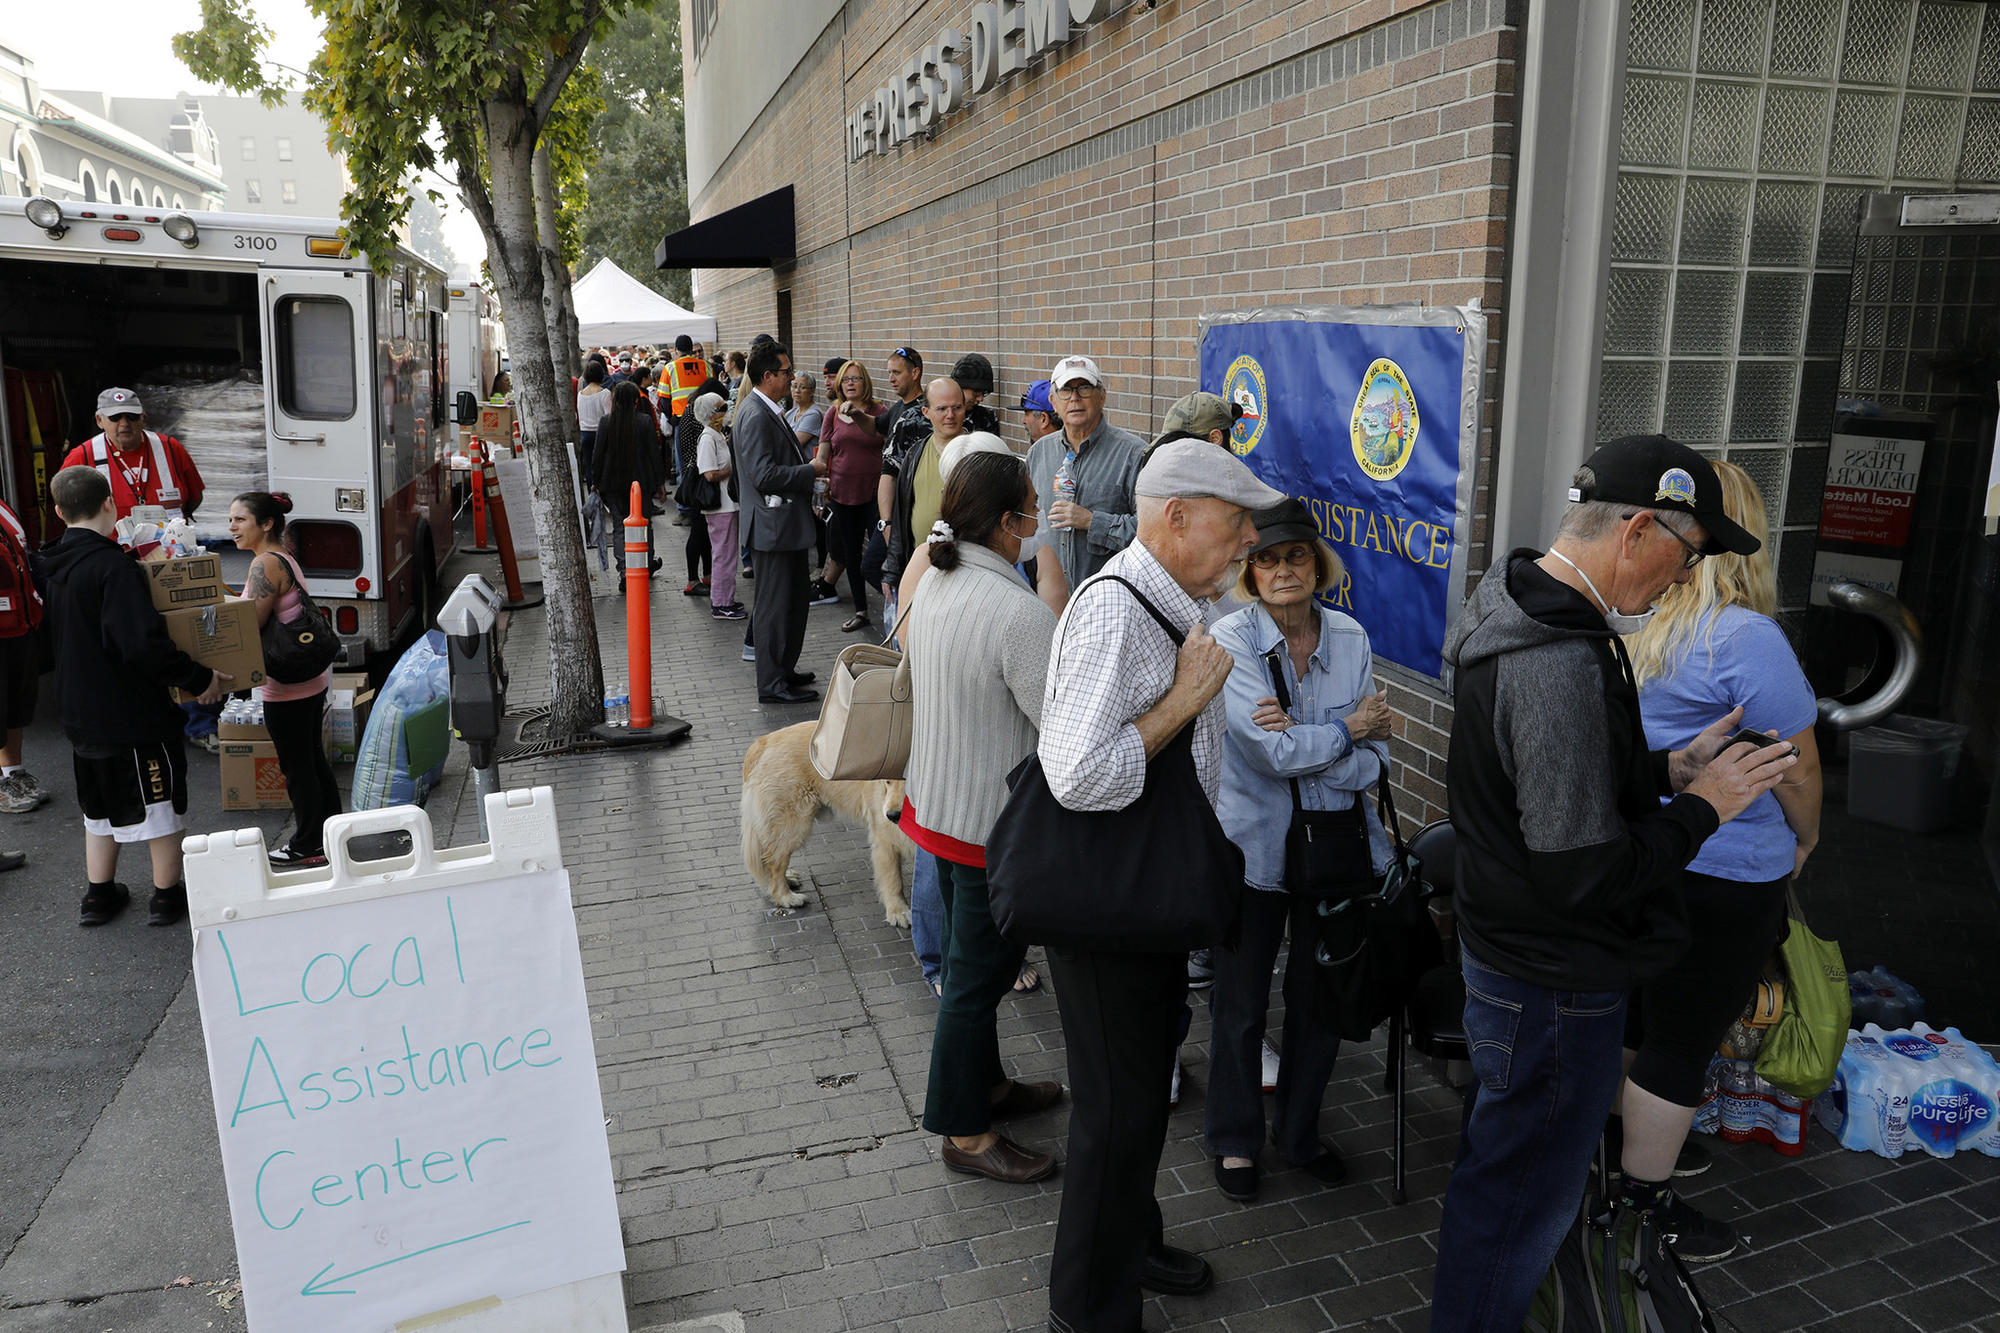 People line up outside an assistance center set up at the Santa Rosa Press Democrat building.